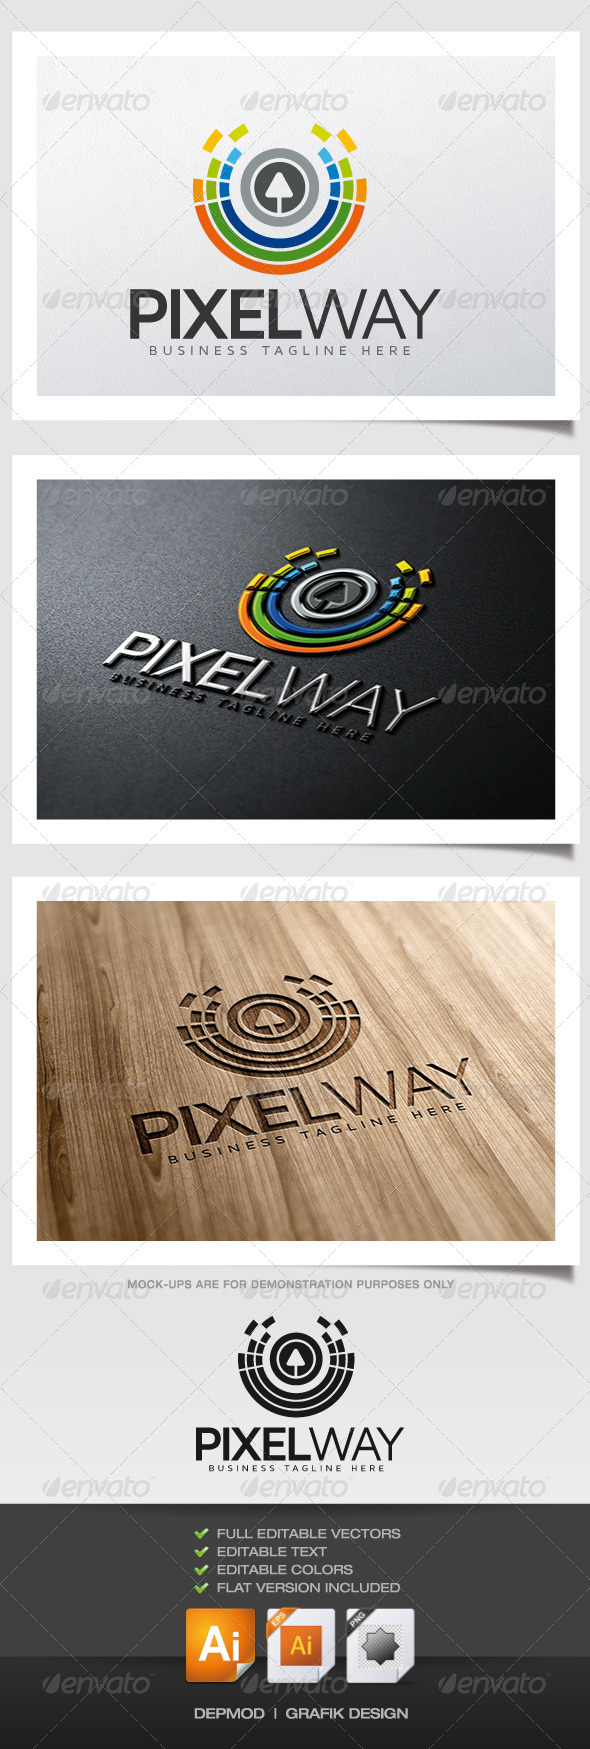 Pixel Way Logo - Abstract Logo Templates